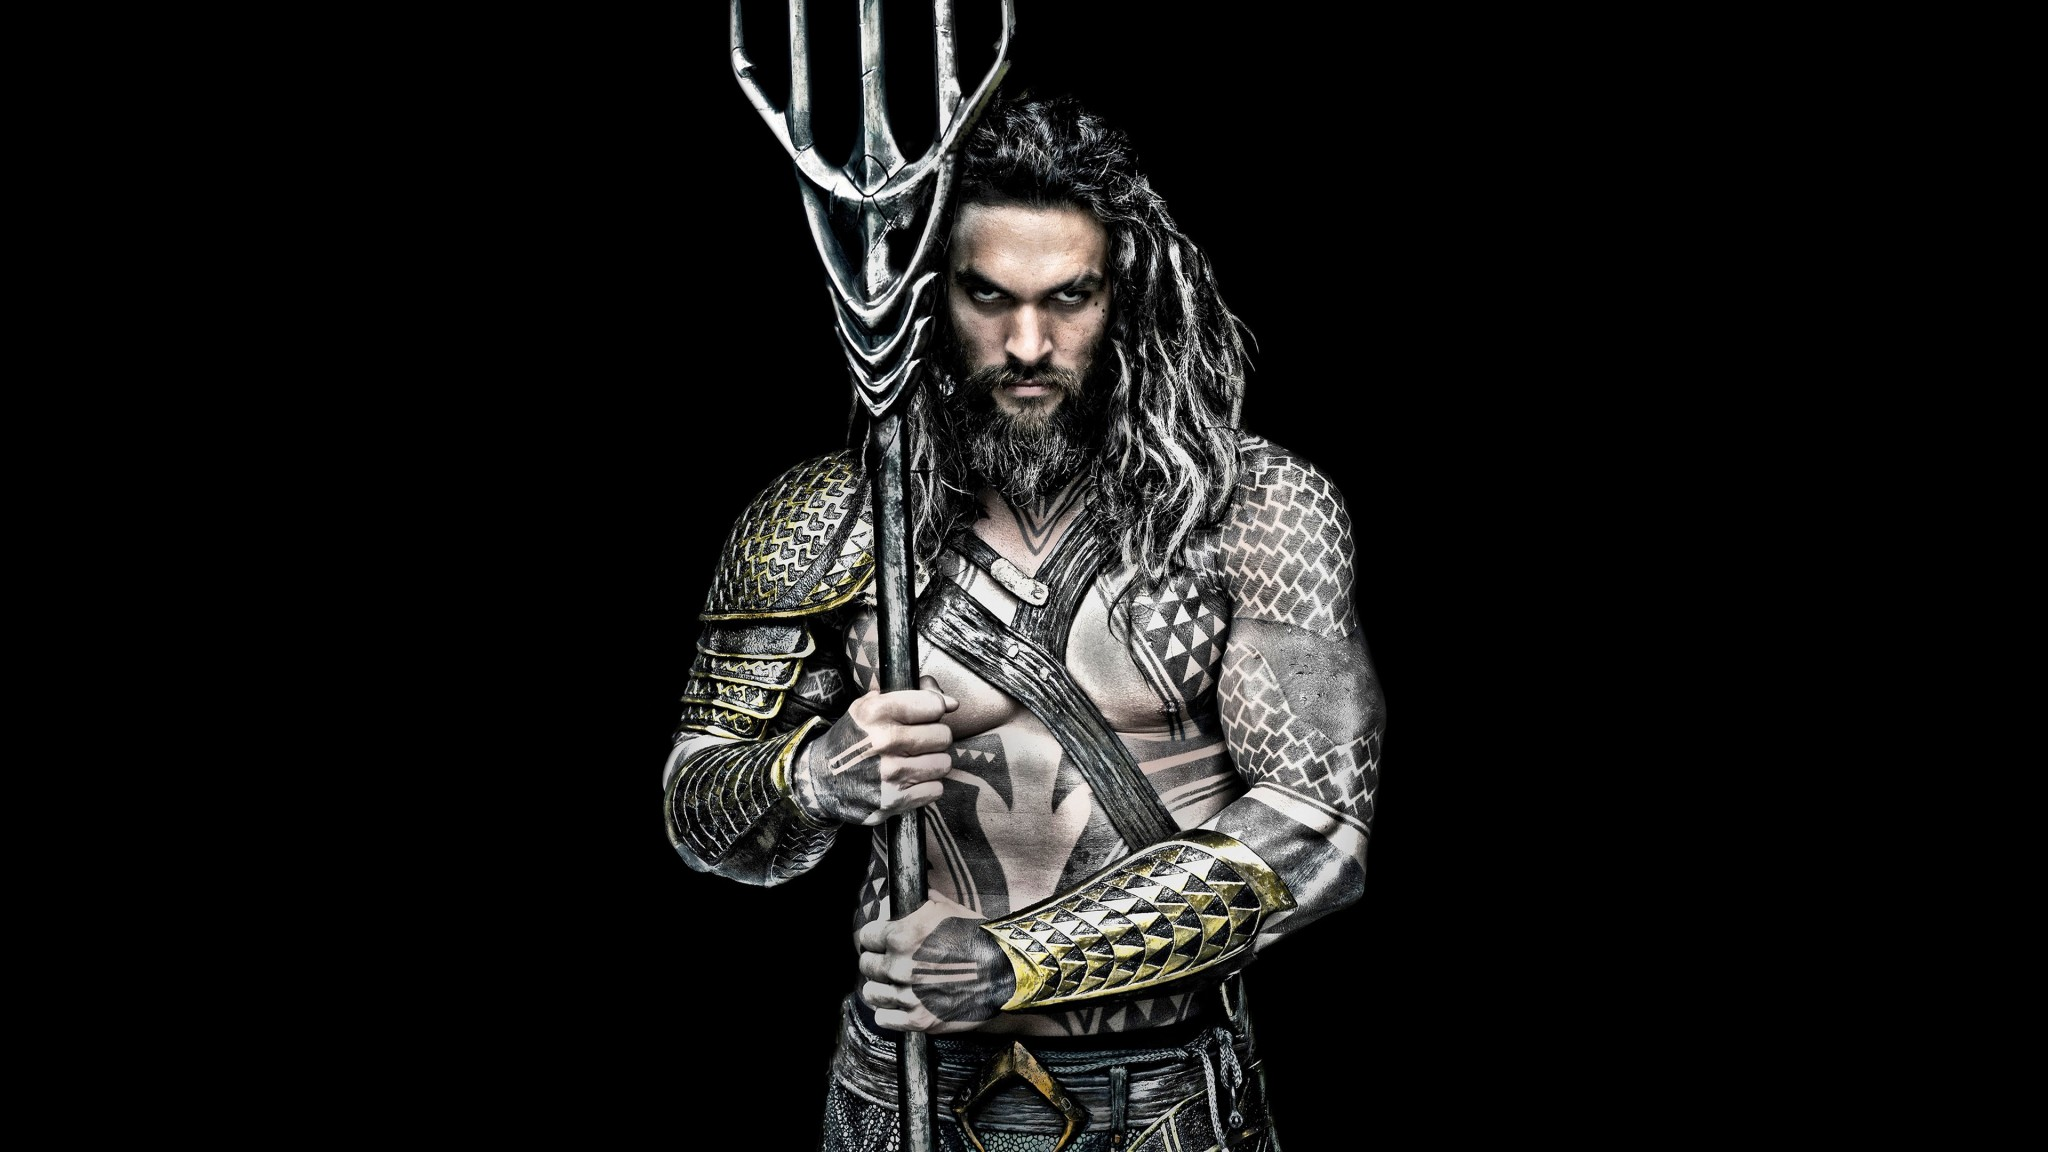 aquaman-batman_v_superman-jason_momoa-movie-3840x2160